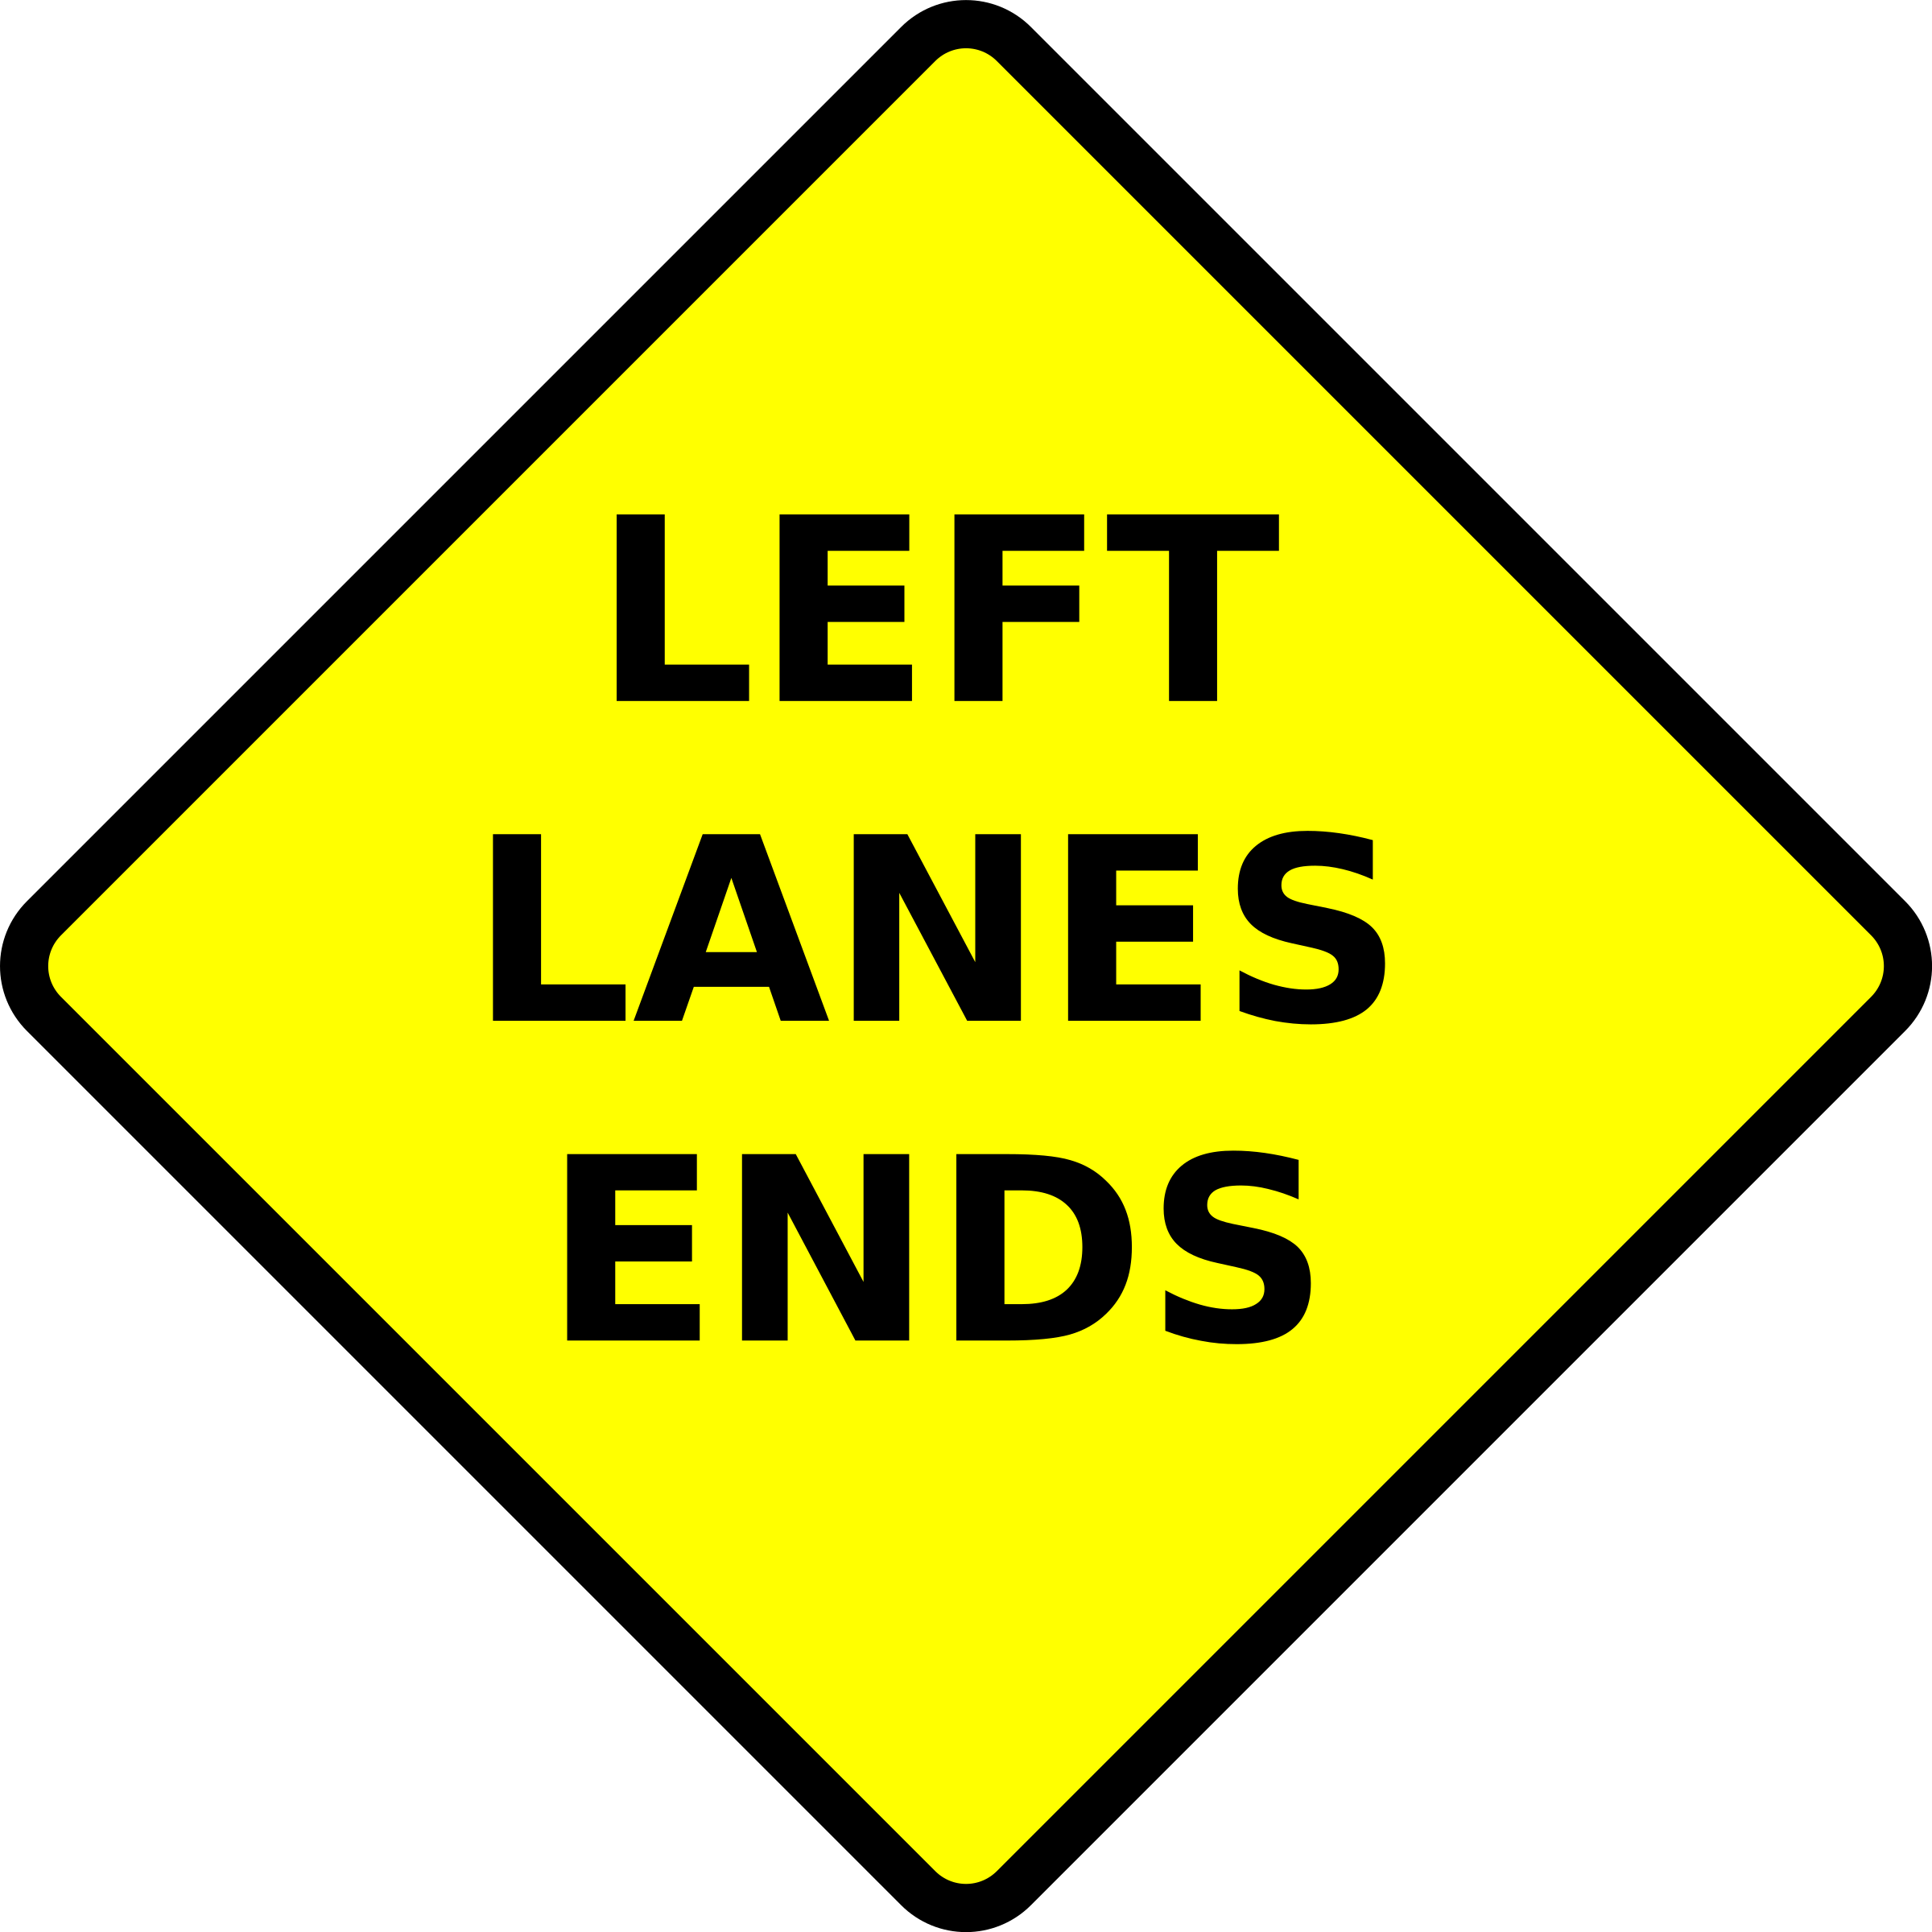 caution-left lane ends by Leomarc